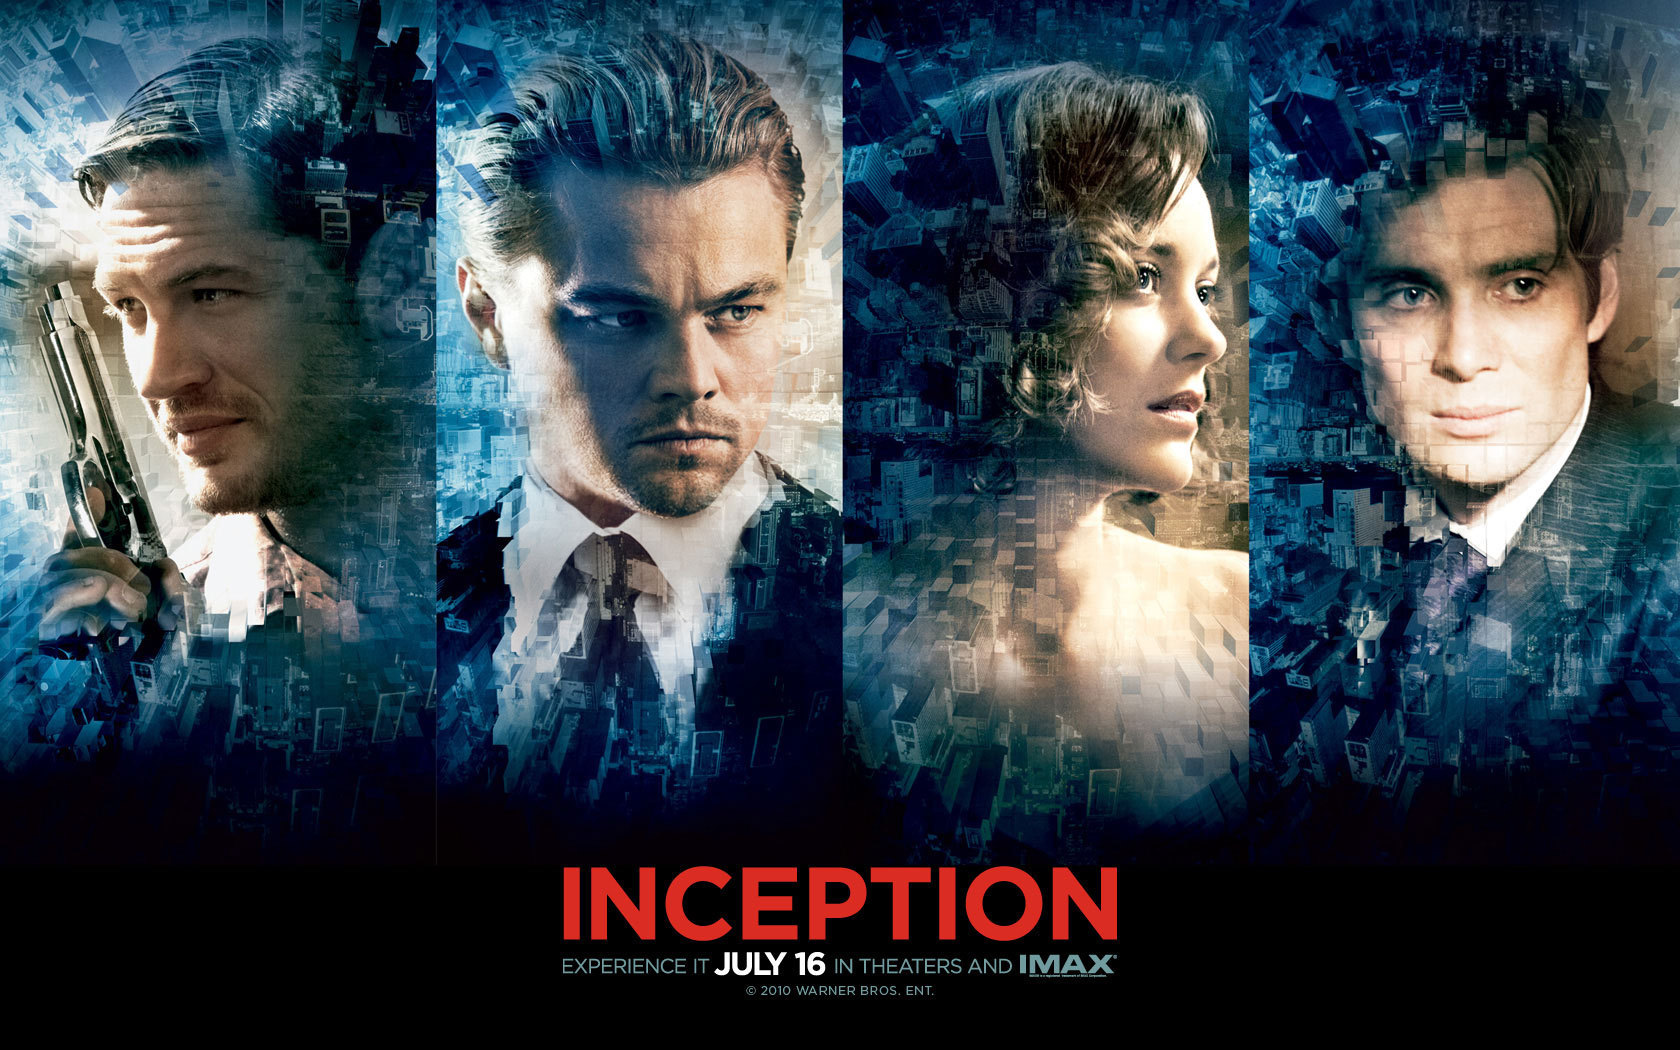 Inception - Inception (2010) Wallpaper (14355479) - Fanpop